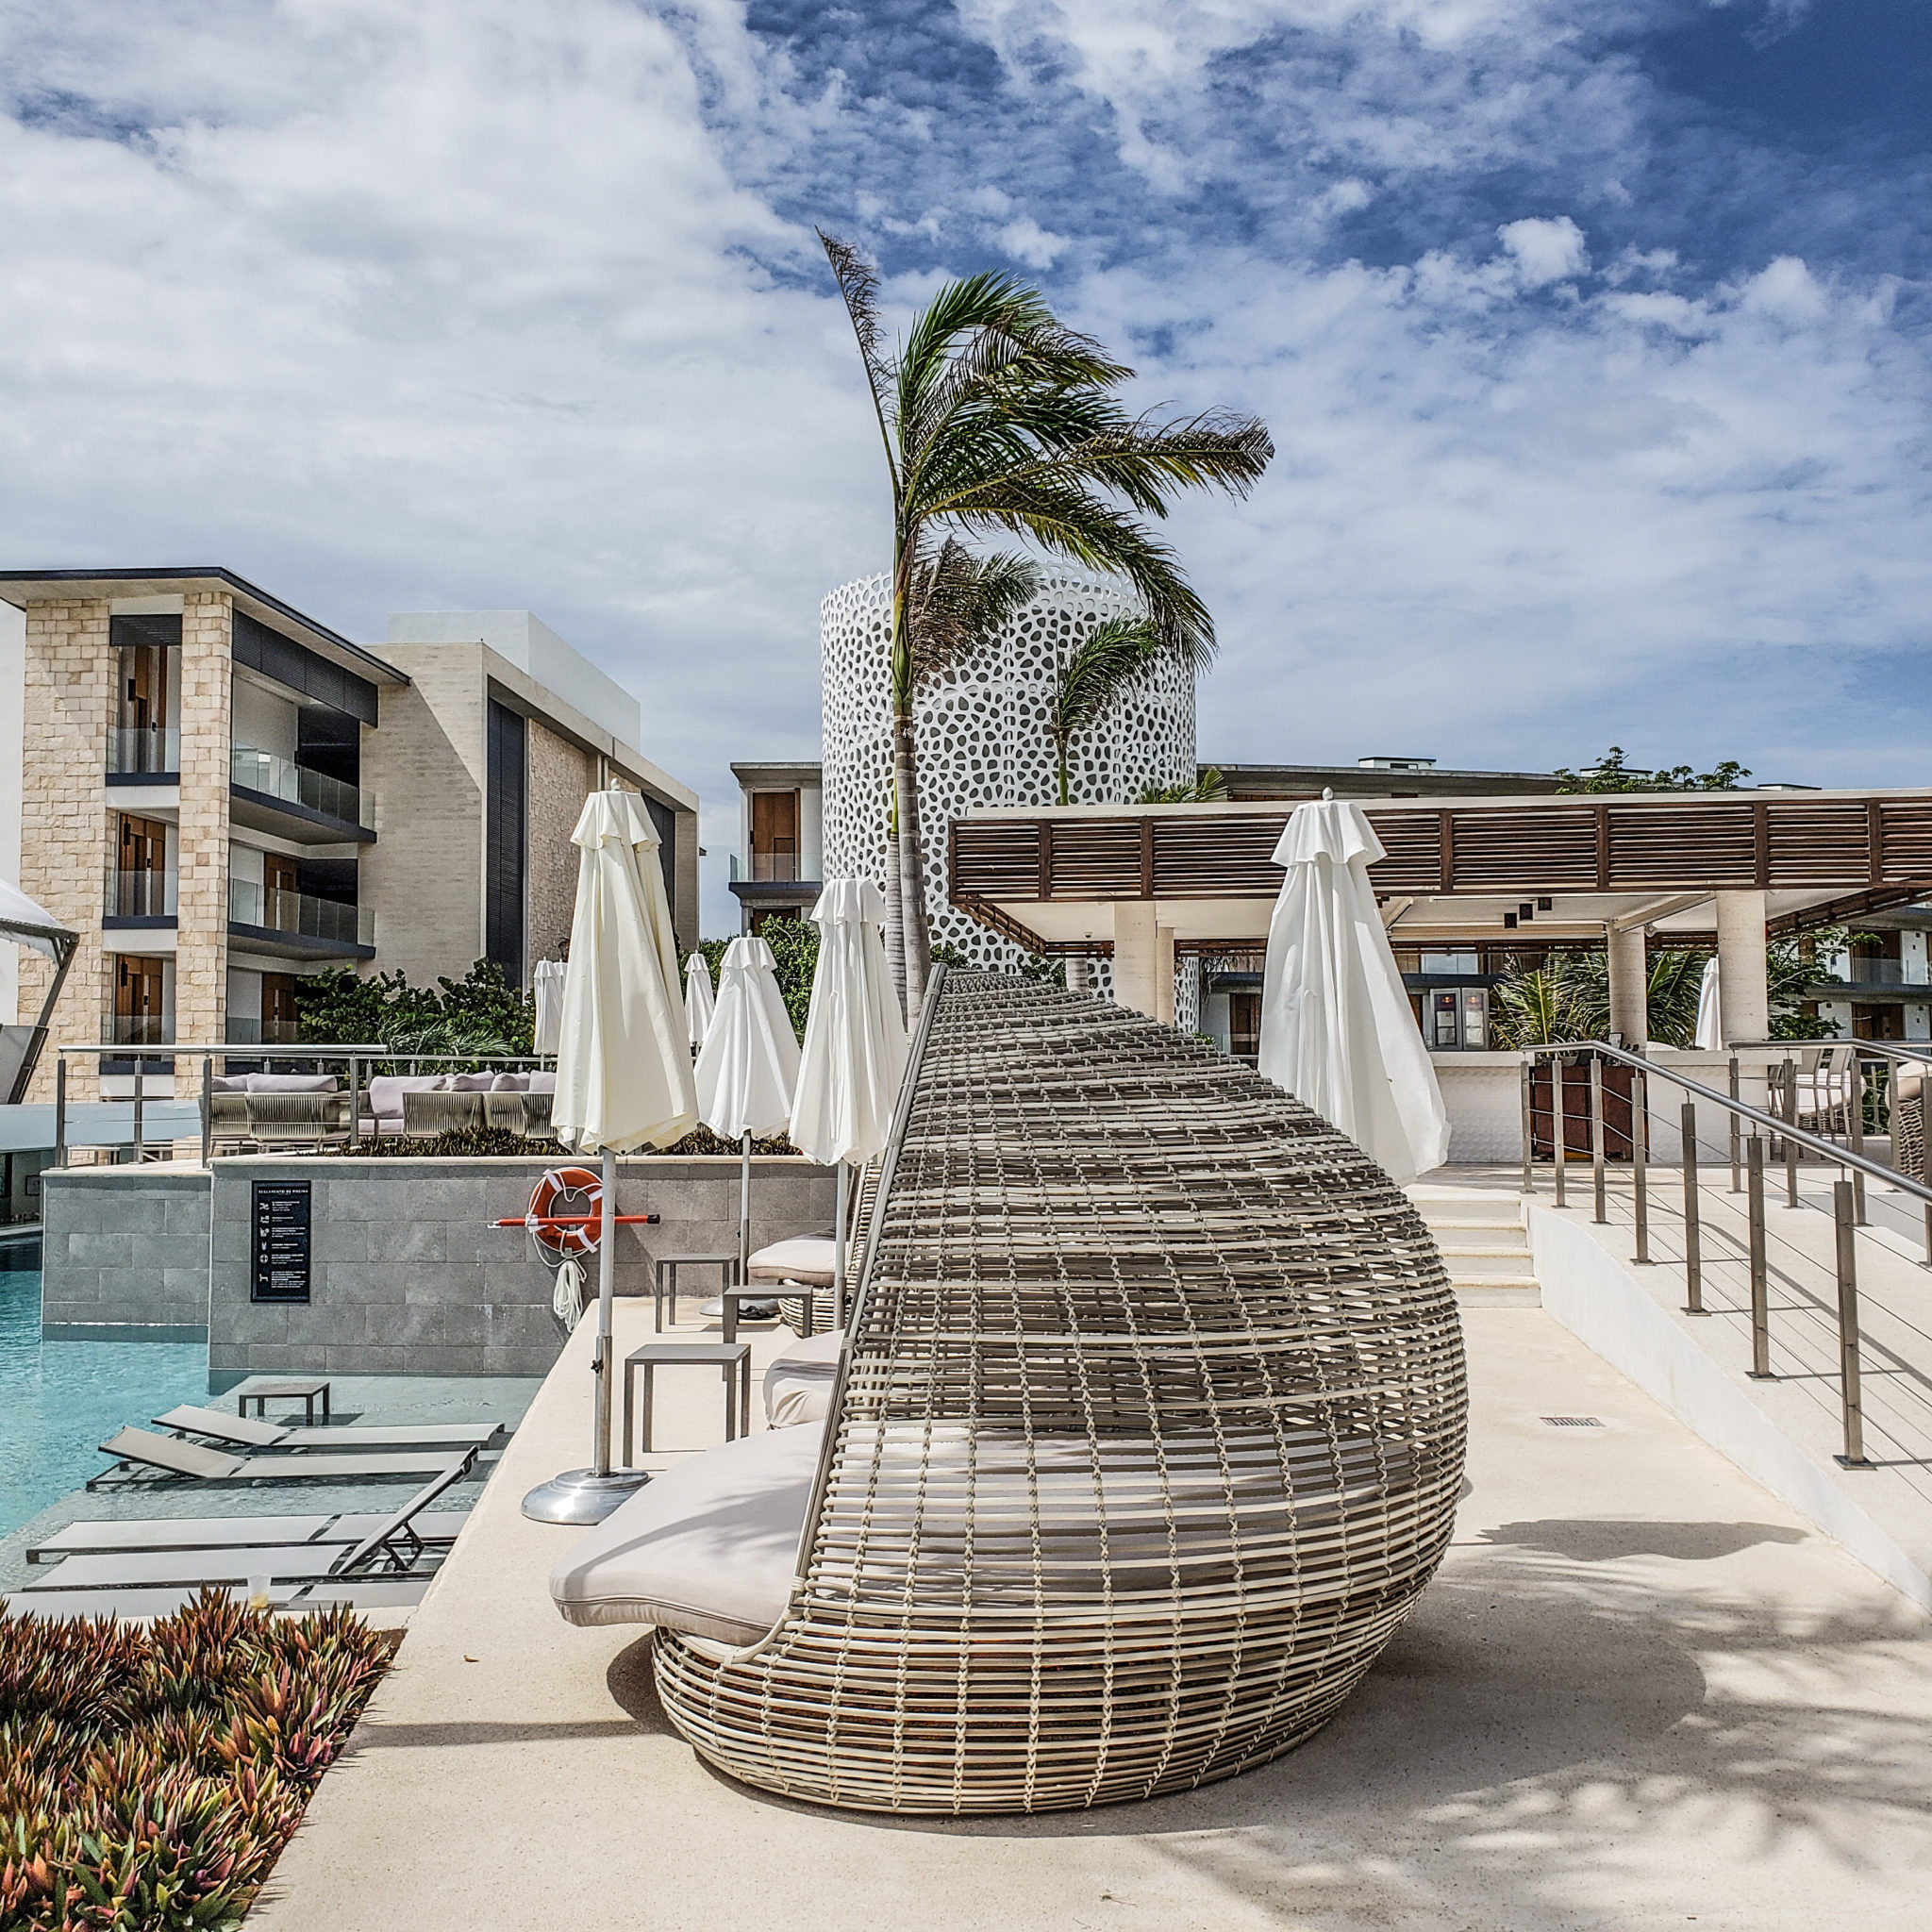 Haven Riviera - Cancun - Haven Resorts - Mexico - Quintana Roo - Poolside Lounger